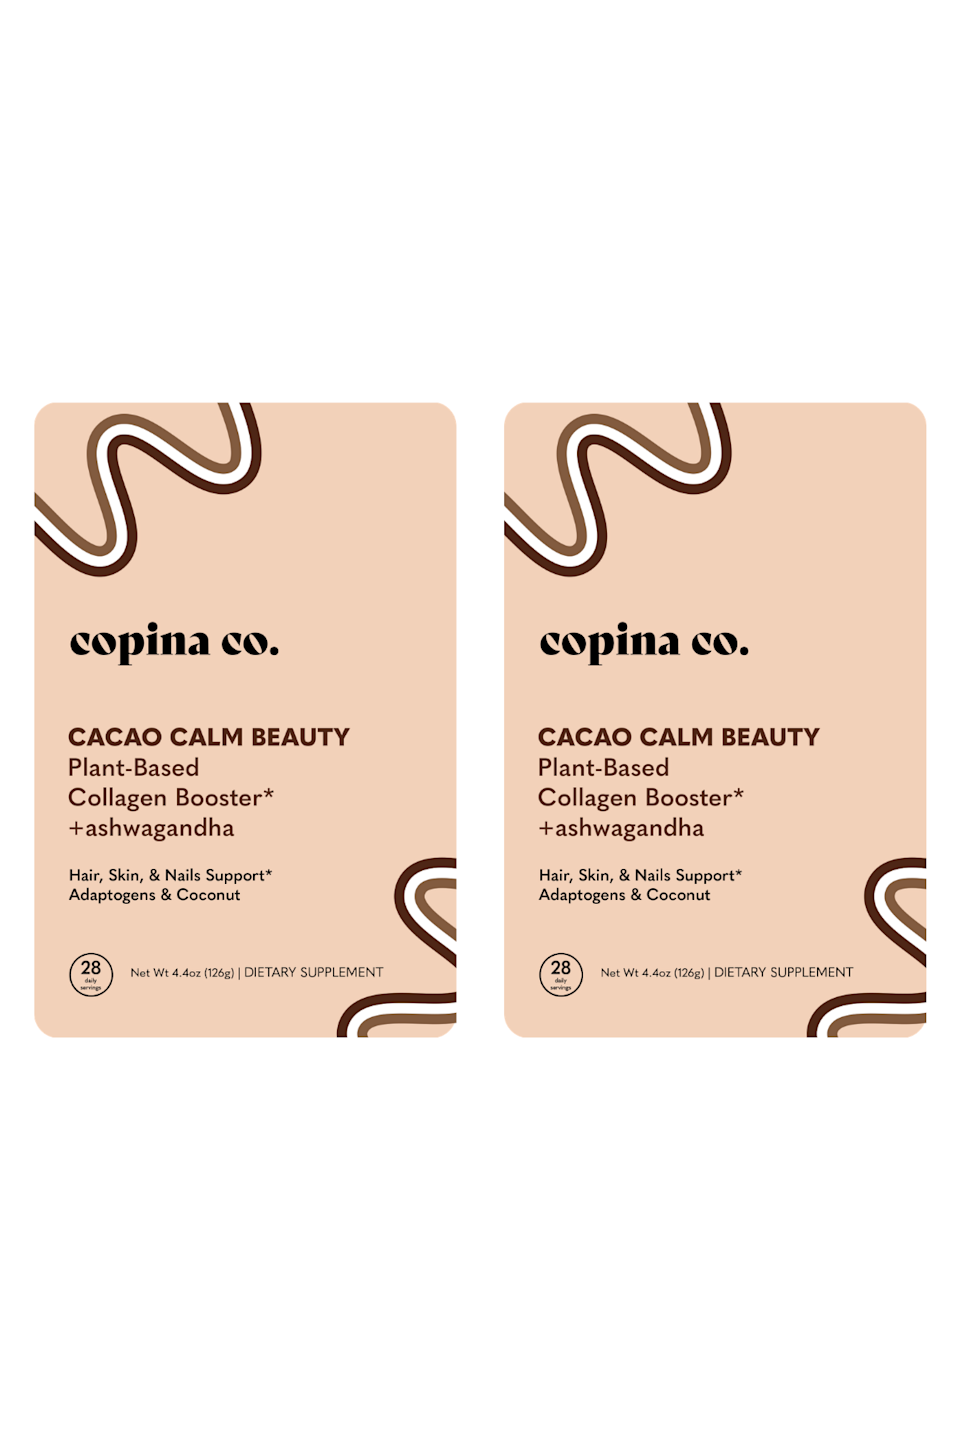 """<h2>Copina Co. Plant-Based Collagen Booster</h2> <br>The hype around collagen powder isn't dying down. It's thought to <a href=""""https://www.refinery29.com/en-ca/2019/05/232620/benefits-collagen-powder-genuine-health-sproos-marine-bovinehttps://www.refinery29.com/en-ca/2019/05/232620/benefits-collagen-powder-genuine-health-sproos-marine-bovine"""" rel=""""nofollow noopener"""" target=""""_blank"""" data-ylk=""""slk:benefit your skin and your joints"""" class=""""link rapid-noclick-resp"""">benefit your skin and your joints</a>. <br><br><strong>Copina Co</strong> Plant-Based Collagen Booster, $, available at <a href=""""https://go.skimresources.com/?id=30283X879131&url=https%3A%2F%2Fcopinaco.com%2Fproducts%2F2-pack-cacao-calm-beauty-plant-based-collagen-booster-ashwagandha"""" rel=""""nofollow noopener"""" target=""""_blank"""" data-ylk=""""slk:Copina Co"""" class=""""link rapid-noclick-resp"""">Copina Co</a><br>"""